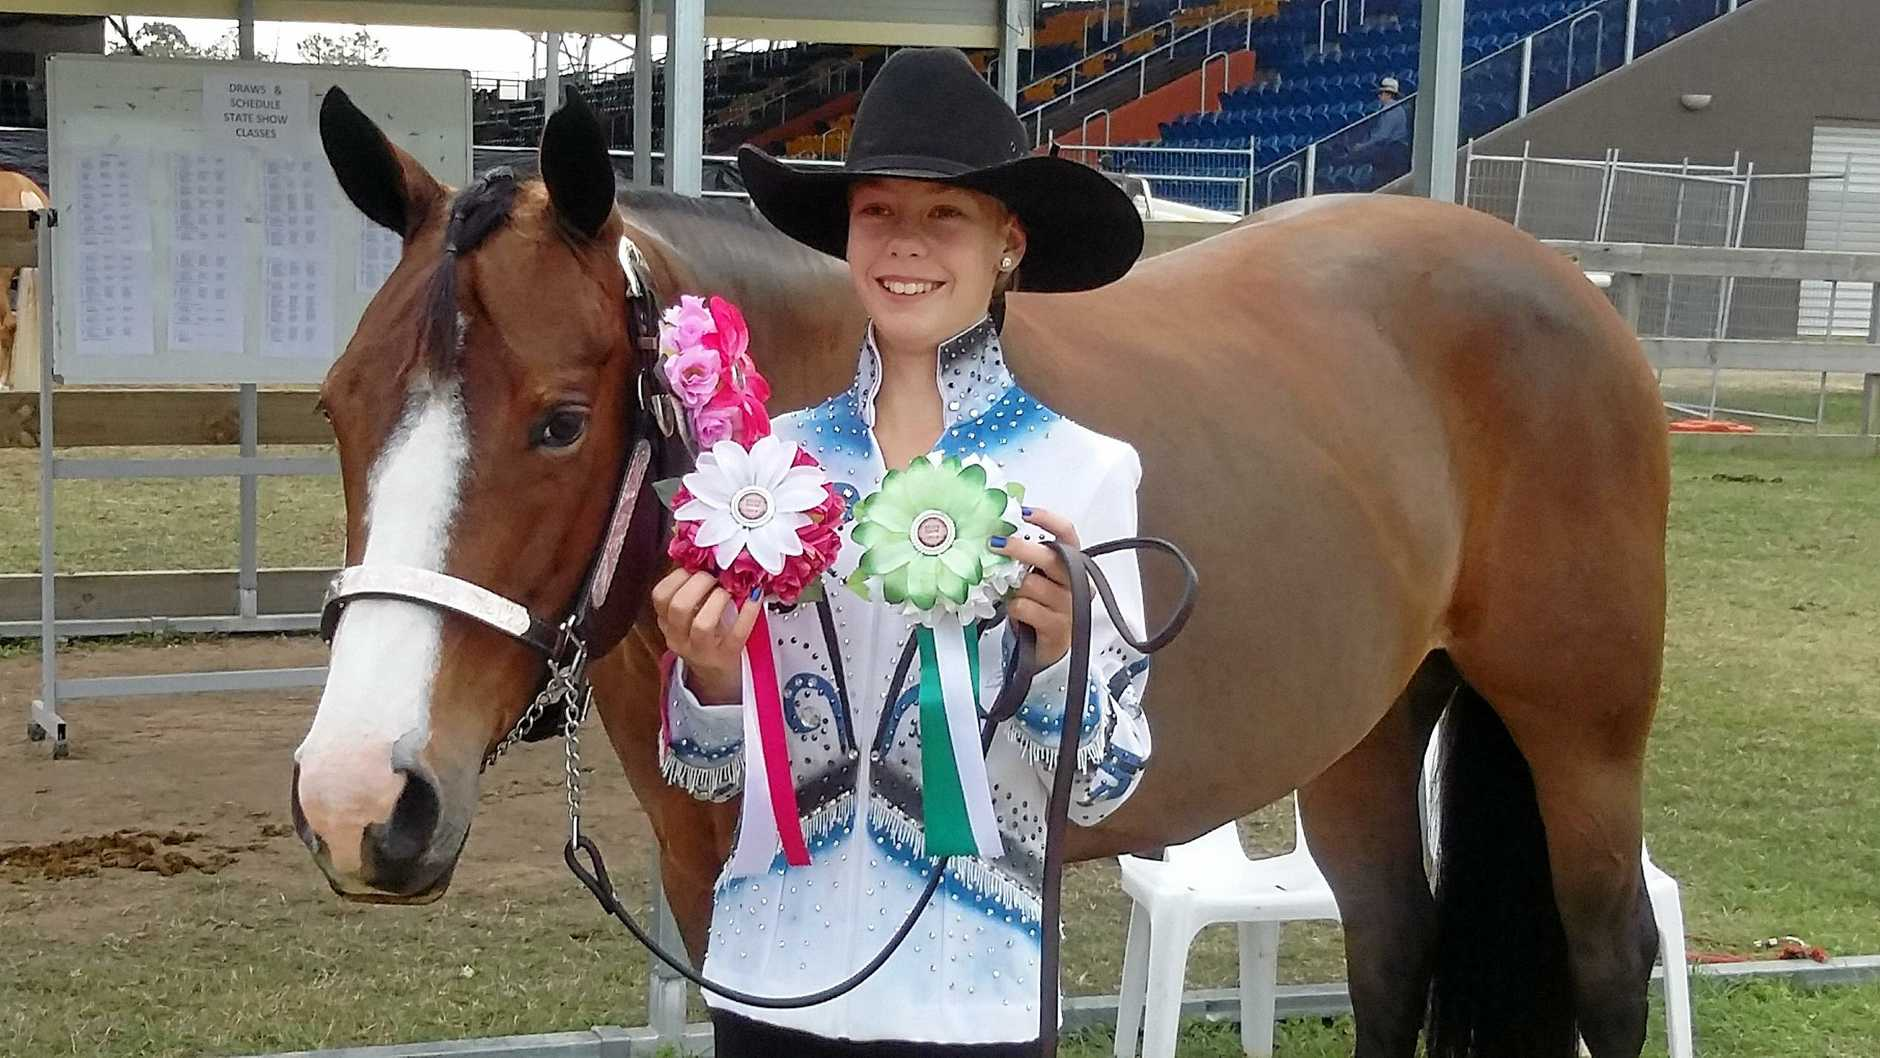 A 12-year-old Courtney Smallwood with Australian Champion horse in showmanship Hottie aka J Bar C Blazin Hot T received rosettes for winning in the showmanship competition.